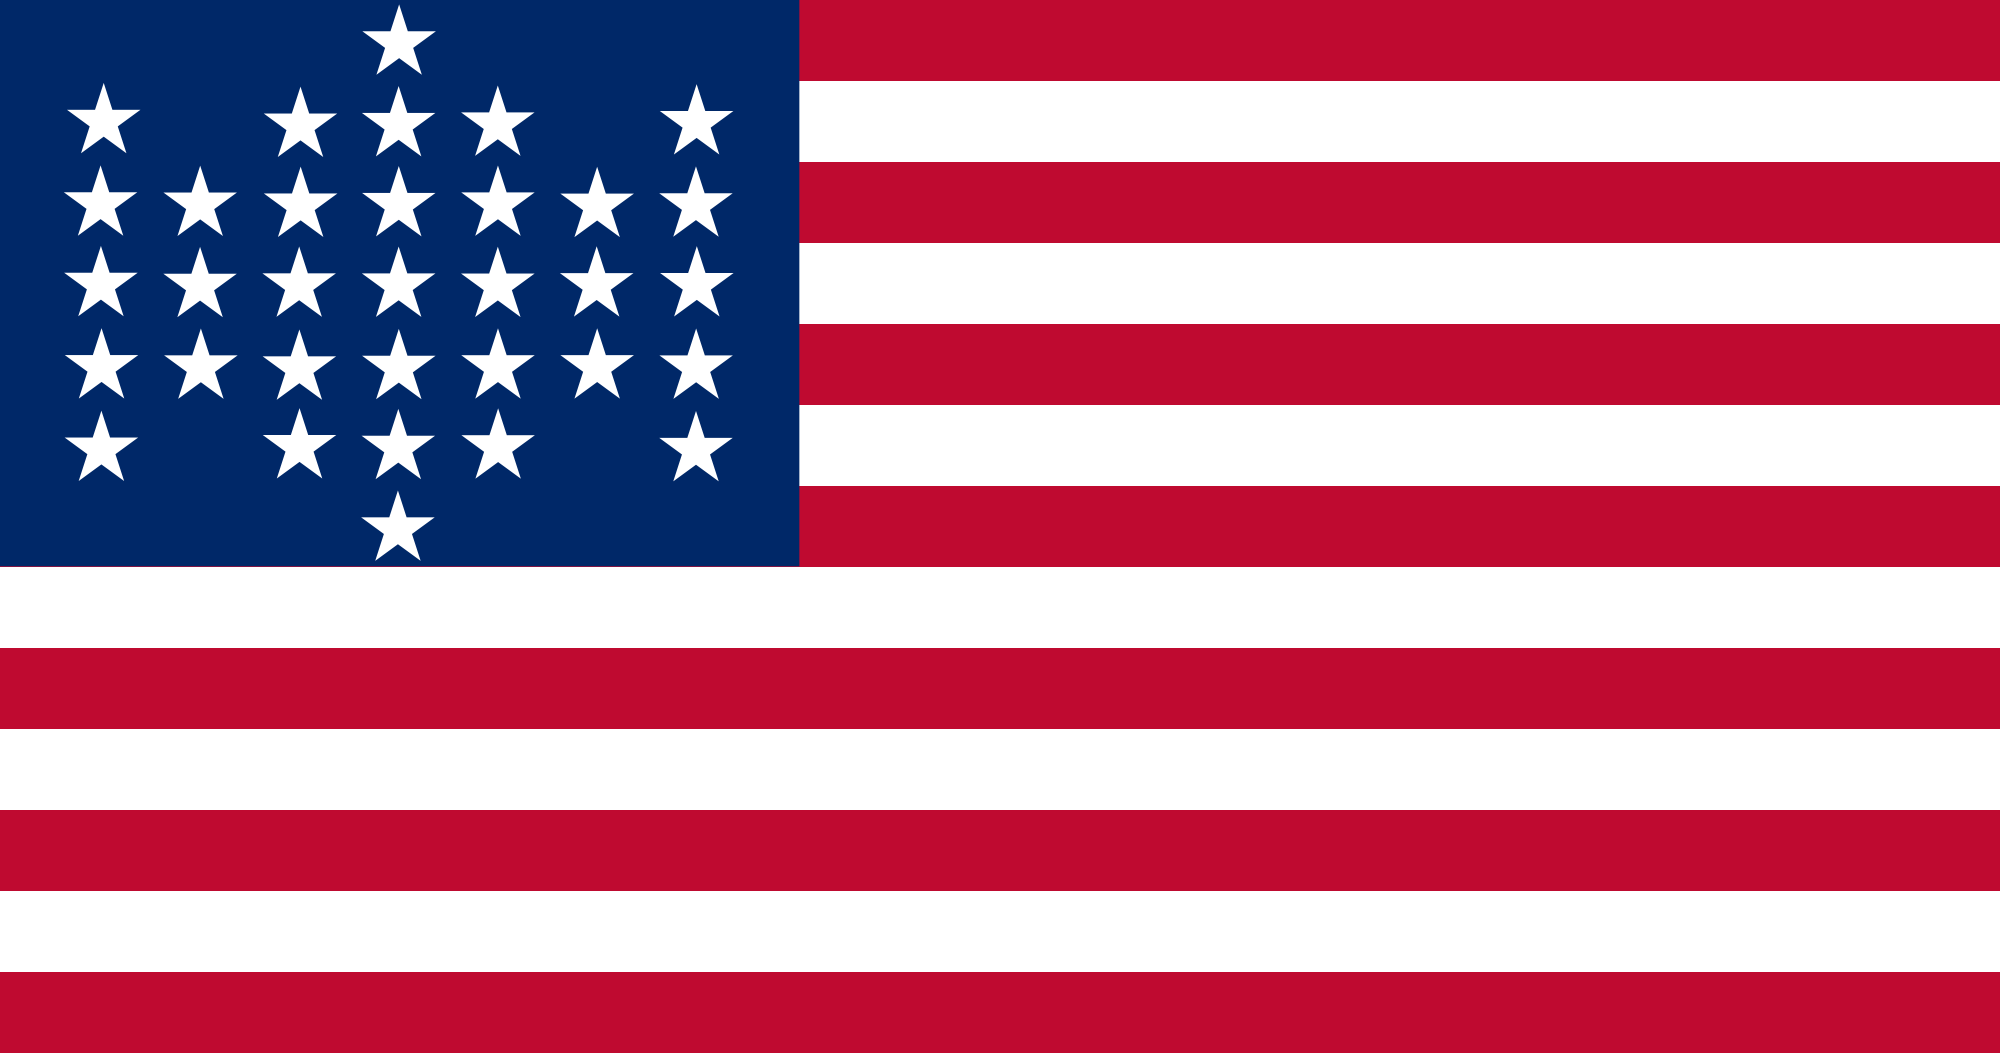 What does a american flag look like 10